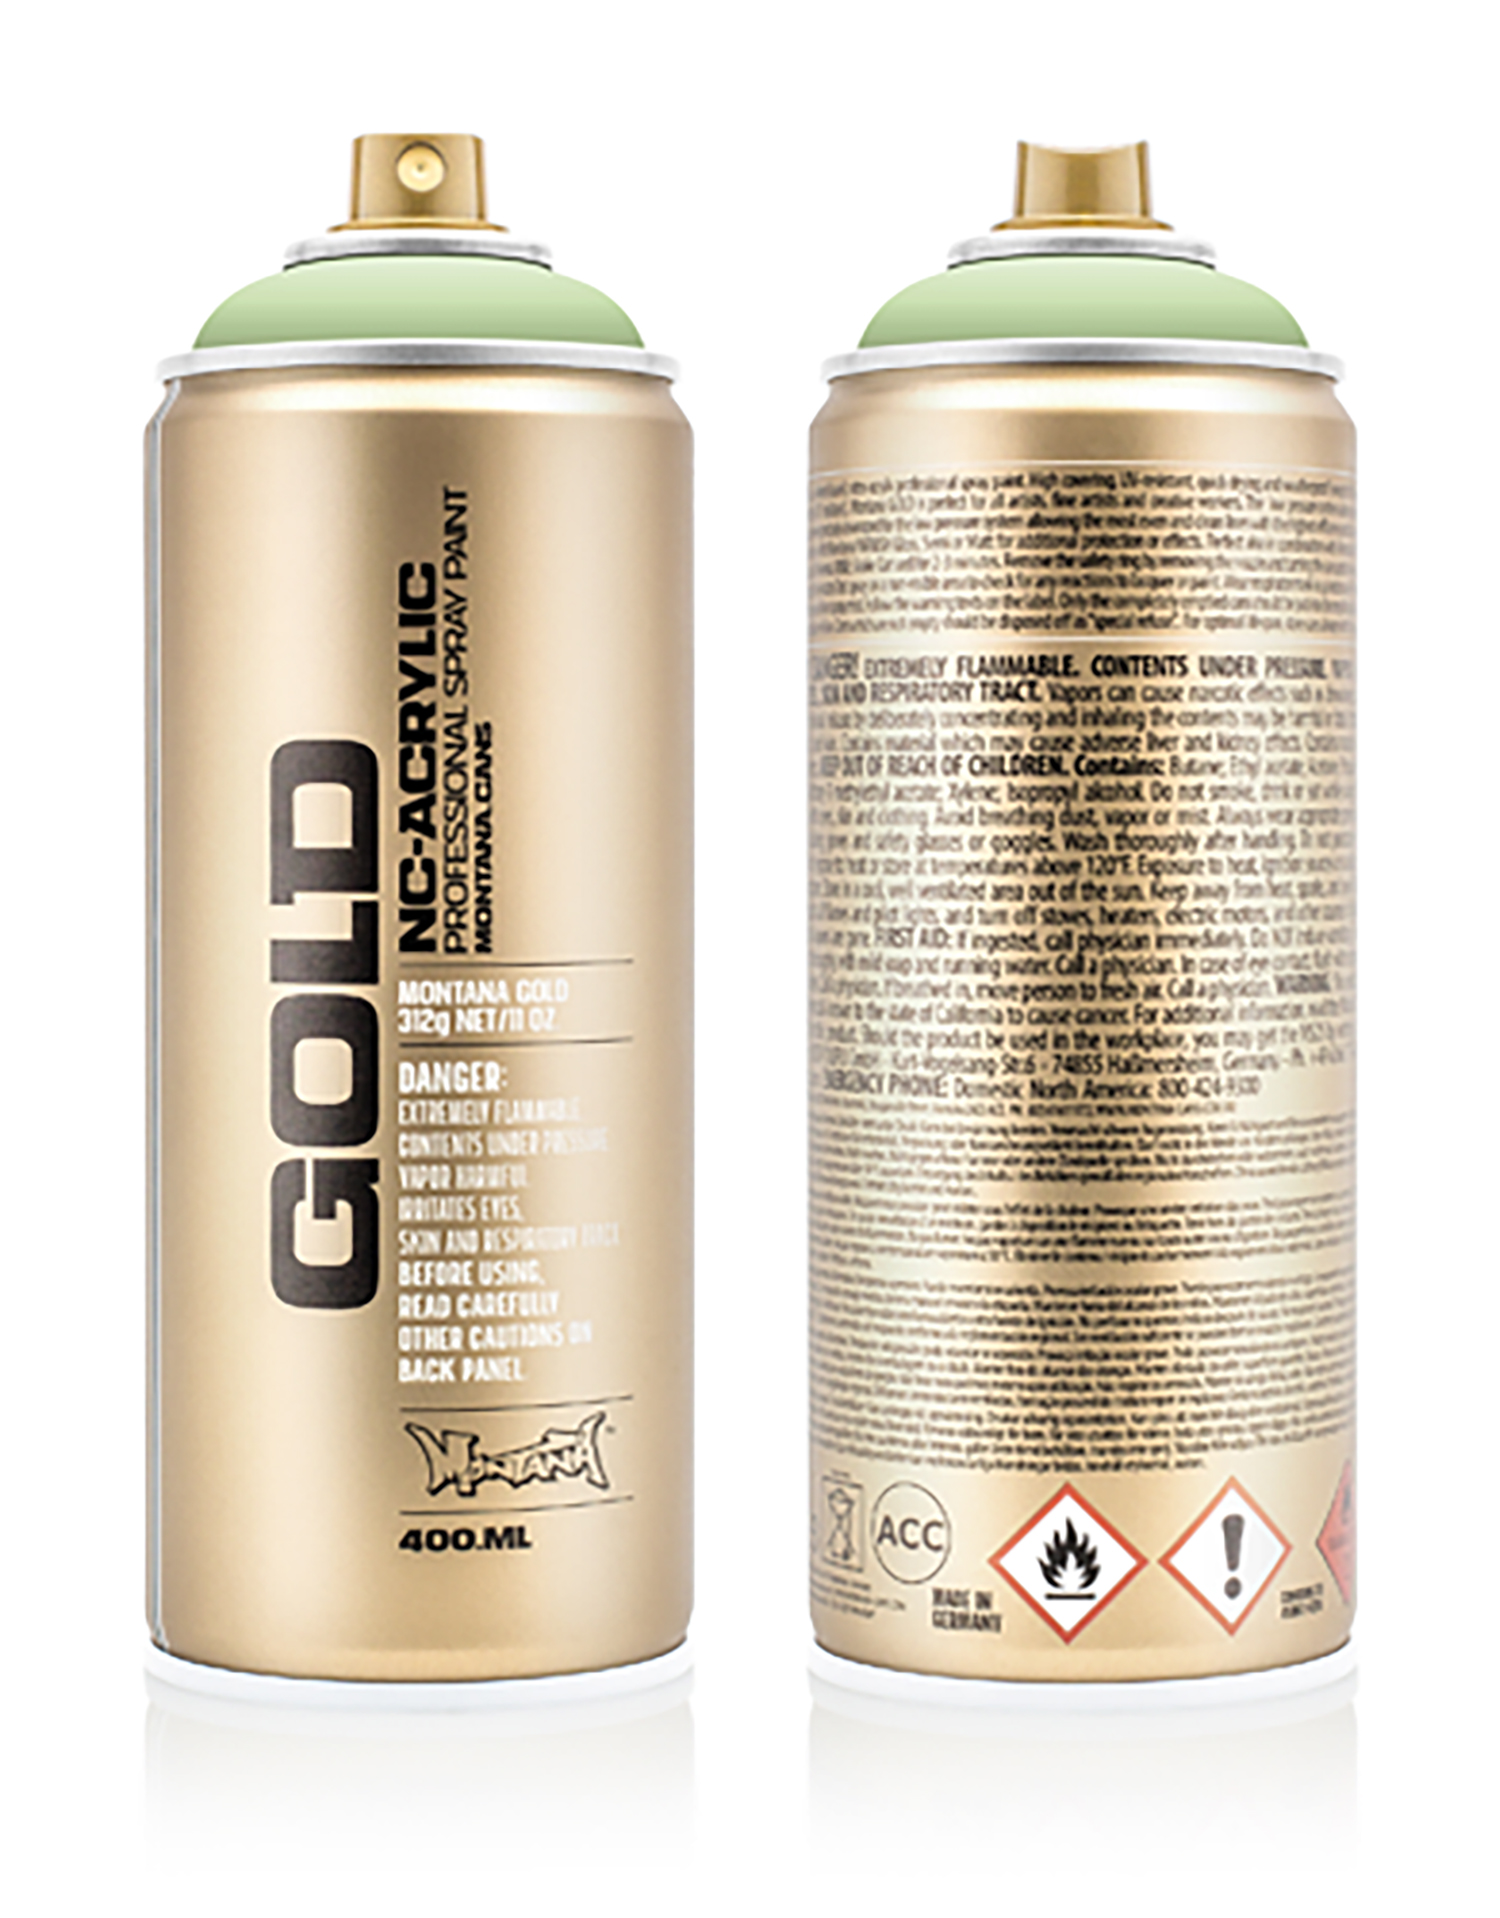 MONTANA-GOLD-SPRAY-400ML-G-6010